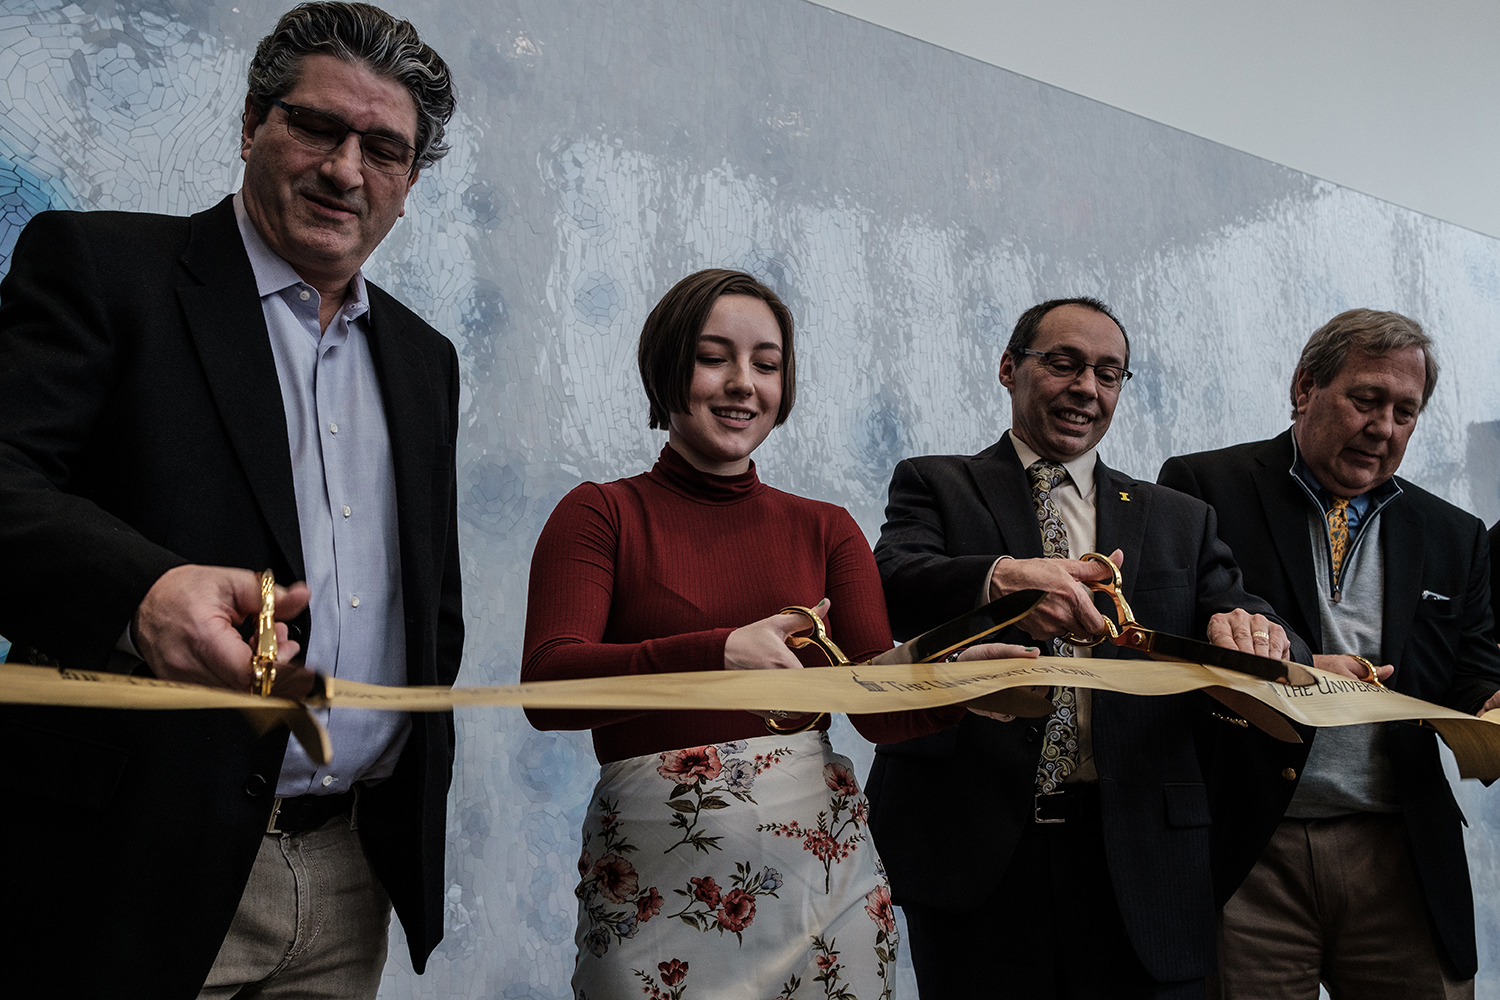 Speakers from the event cut a ceremonial ribbon during the opening reception for the Psychological and Brain Sciences Building on Jan. 24. The building has been under construction for two and a half years but was ready for use by faculty and students for the spring semester of 2020.